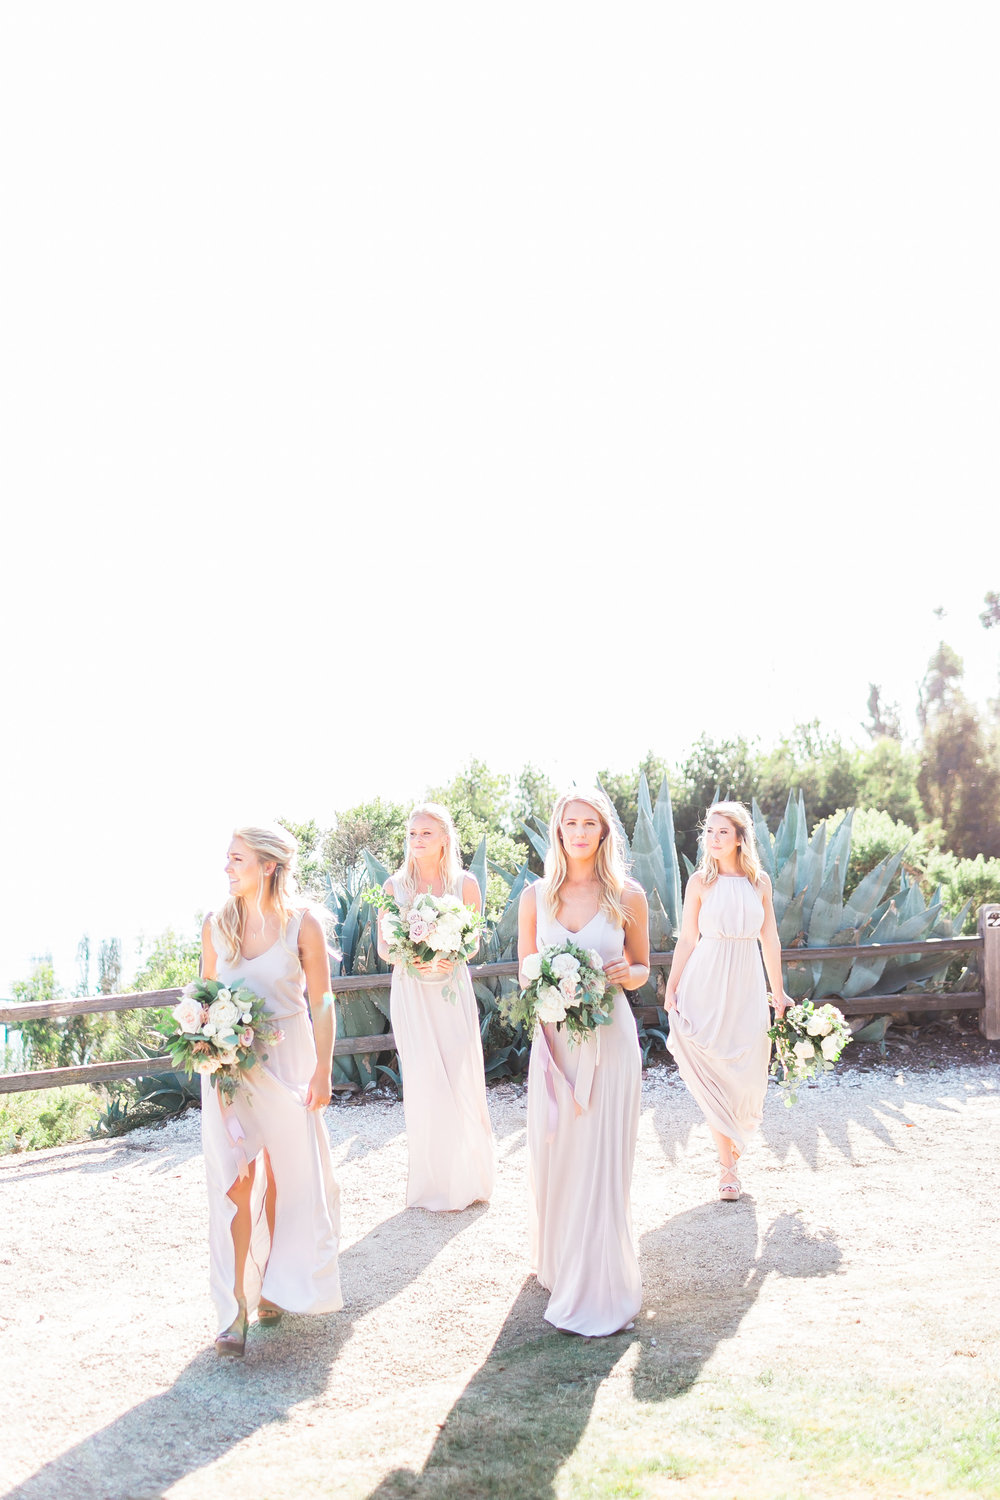 The blondest bridesmaids you ever did see!     Destination Wedding Planner  ANDREA EPPOLITO EVENTS   ·  Images by  J.ANNE P  HOTOOGRAPHY   ·  Video  HOO FILMS   ·  Venue Ritz Carlton Bacara Santa Barbara  · Gown MONIQUE LHULLIER  · Bridesmaids Dresses  SHOW ME YOUR MUMU  · Stationery  SHE PAPERIE  · Bride's Shoes  BADGLEY MISCHKA  · Hair and Makeup  TEAM HAIR AND MAKEUP  · Floral  BLUE MAGNOLIA  · Linen  LA TAVOLA  · Decor Rentals  TENT MERCHANT  · Calligraphy  EBB  ·Lighting  FIVE STAR AV  · Ice Cream Station  MCCONNELL'S ICE CREAM